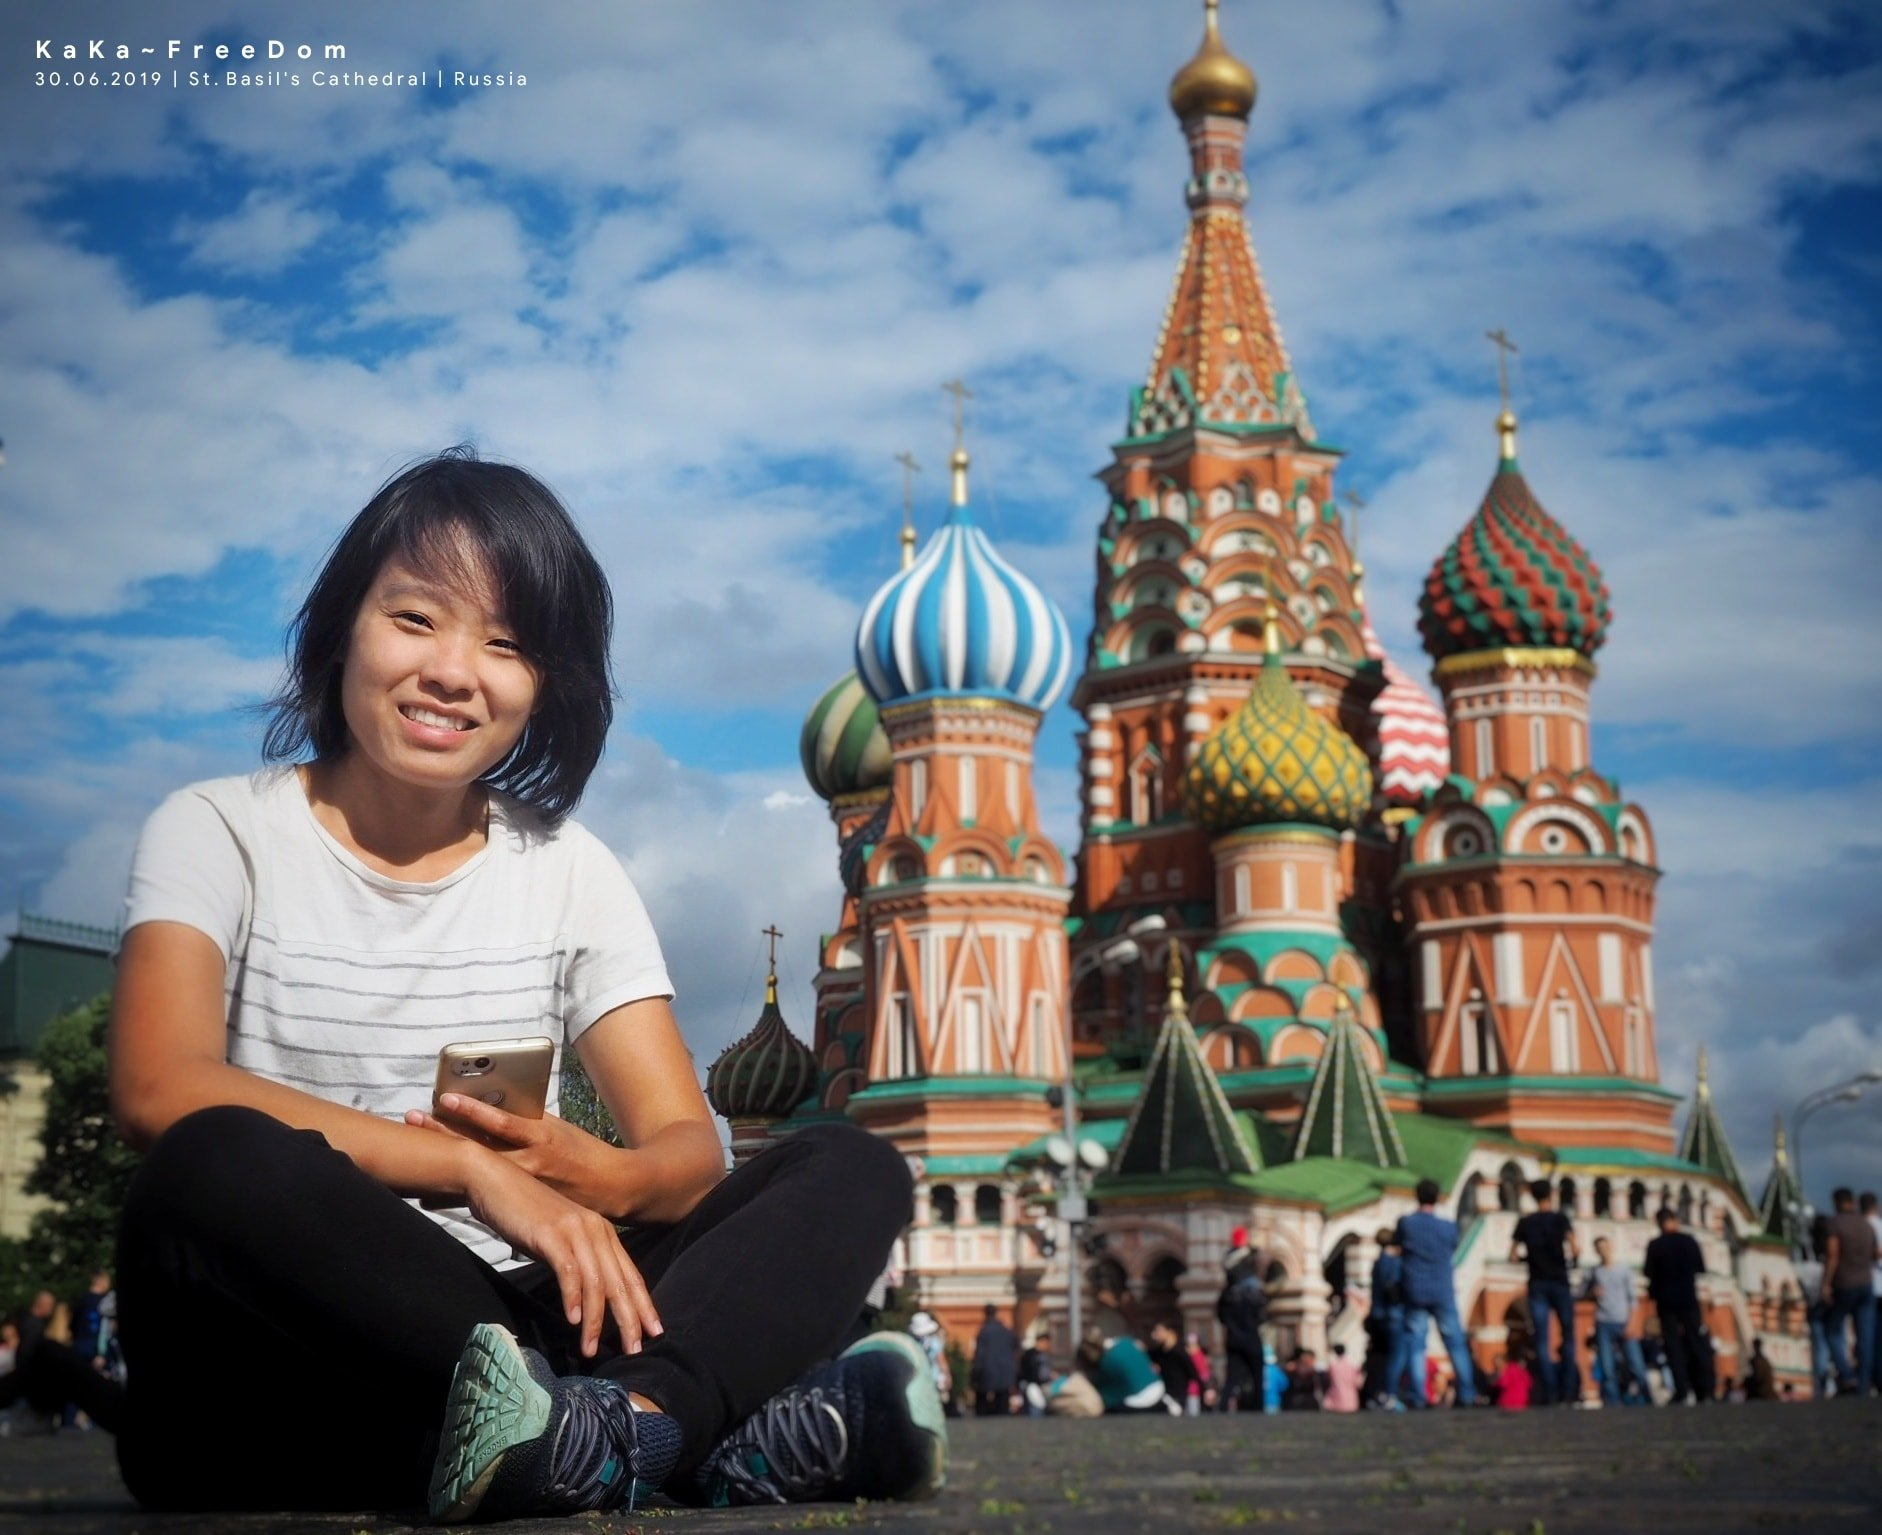 Last year, Wimonrat Sangthong traveled around the world for five months. Here she is in Red Square in Moscow, Russia. St. Basil's Cathedral is in background.